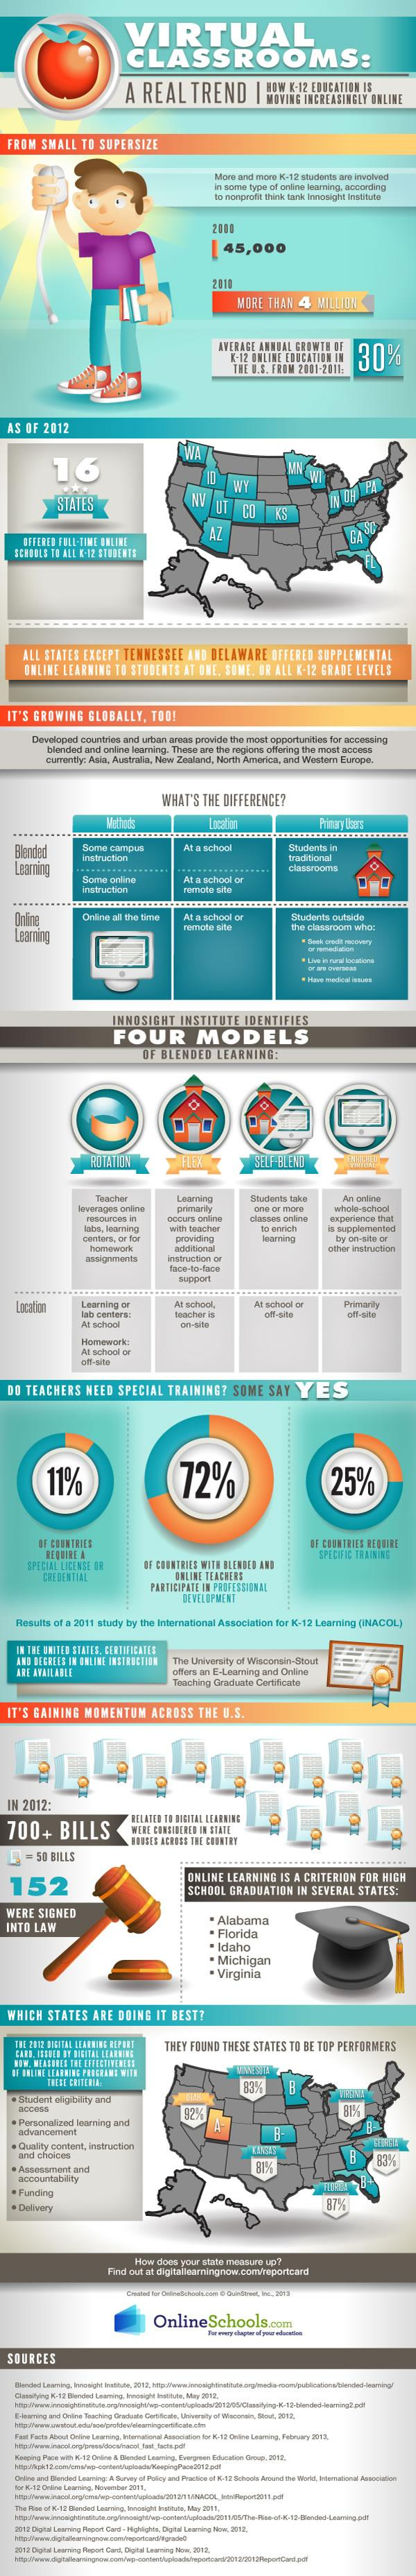 K12 Education is Moving Increasingly Online Infographic